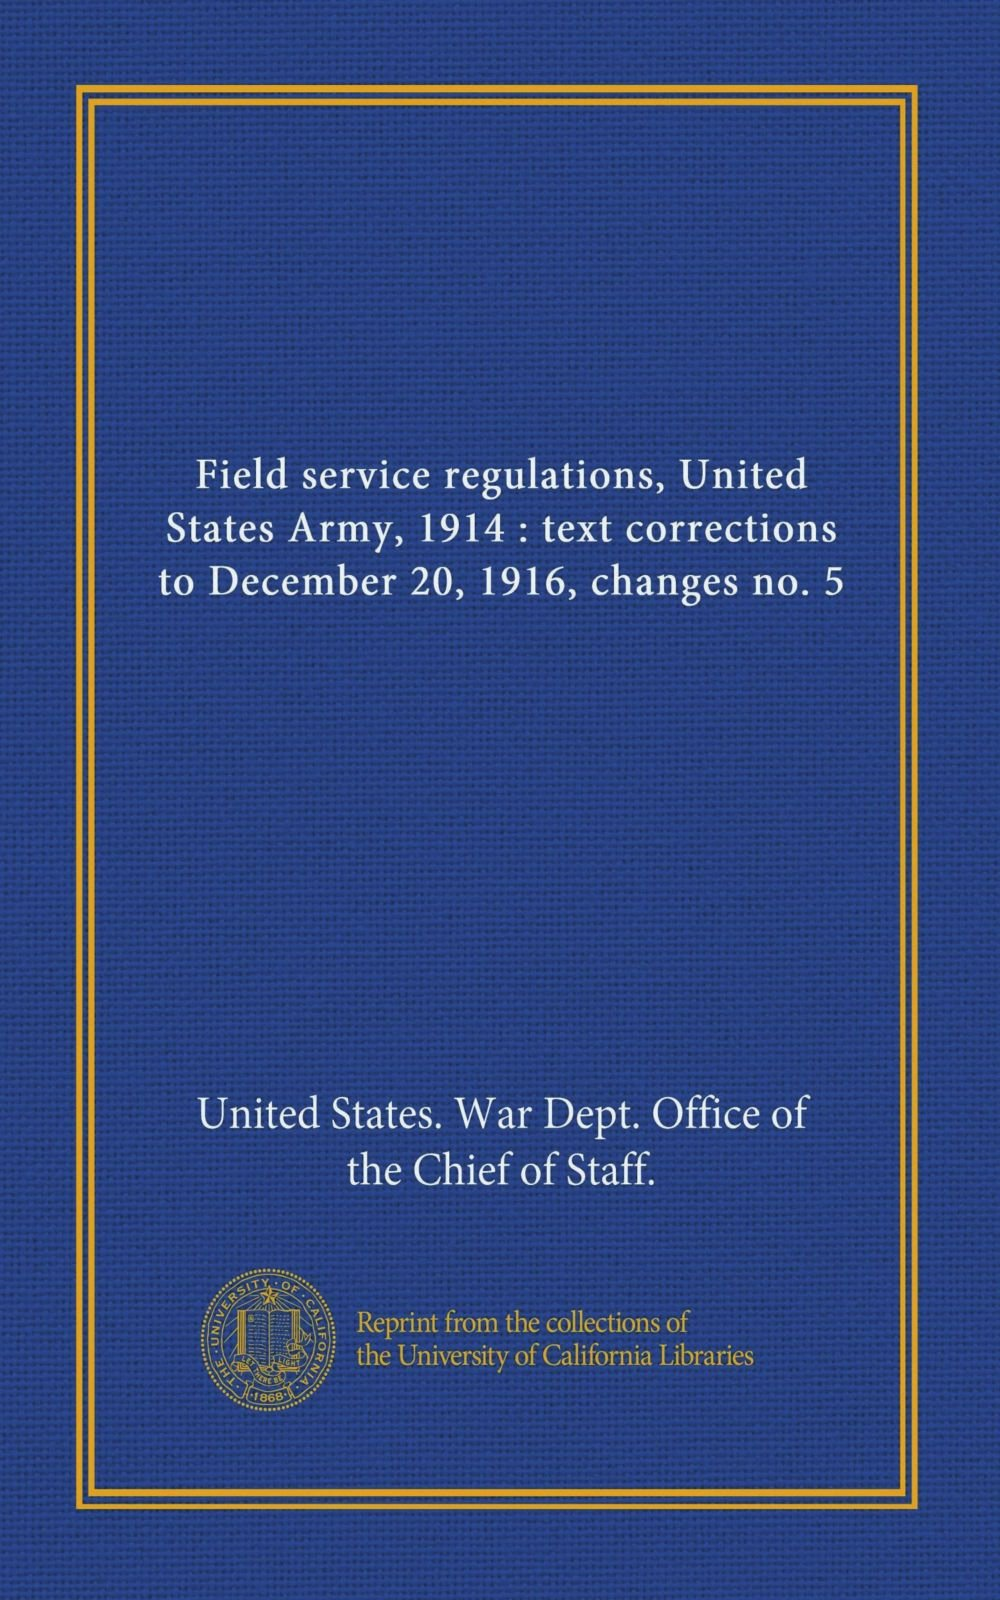 Field service regulations, United States Army, 1914 : text corrections to December 20, 1916, changes no. 5 ebook